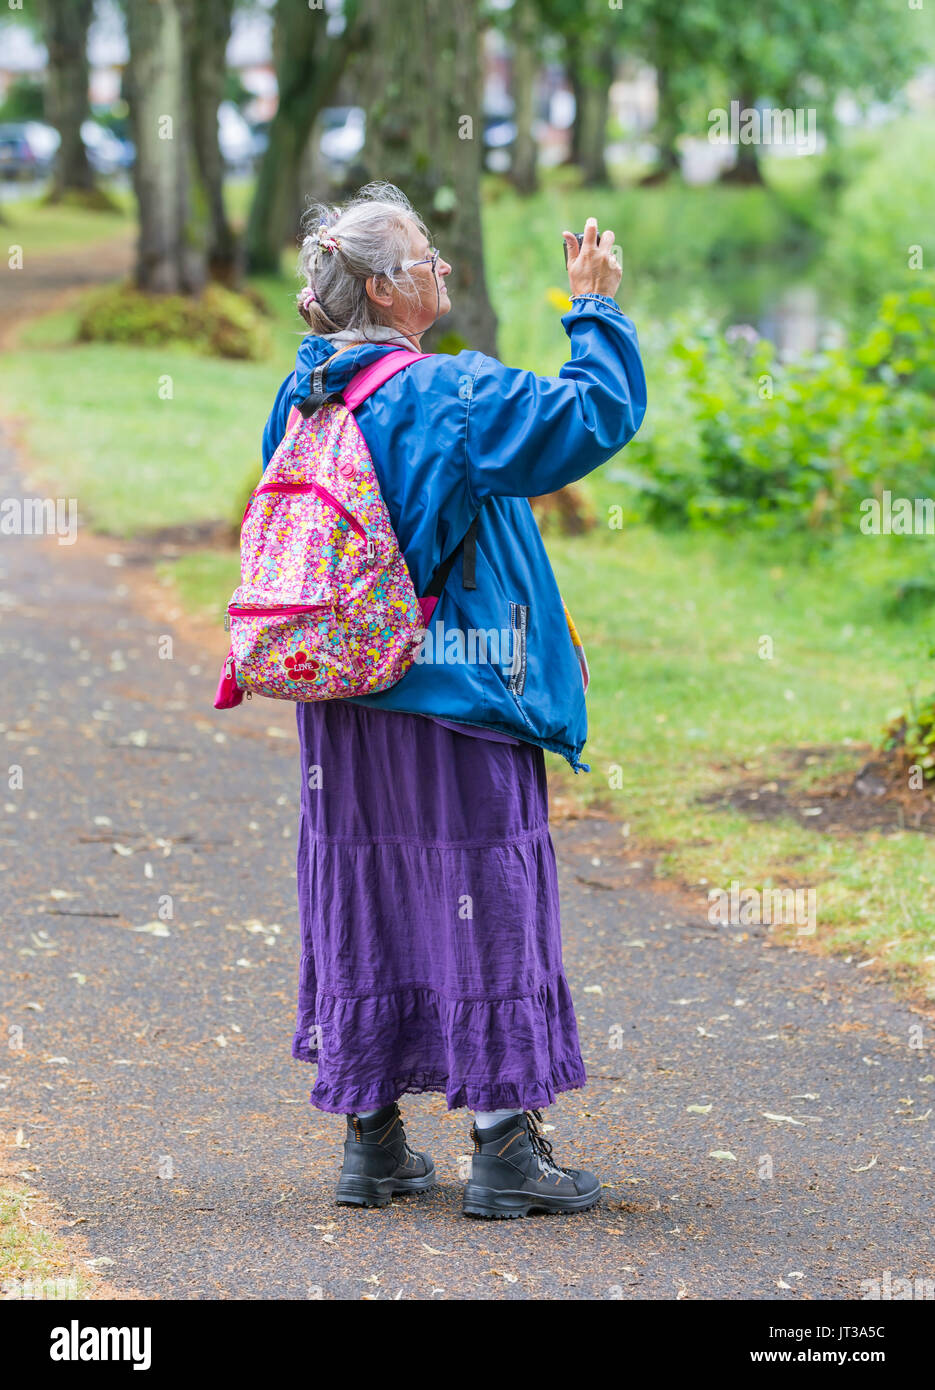 Elderly woman with a backpack taking photos. - Stock Image